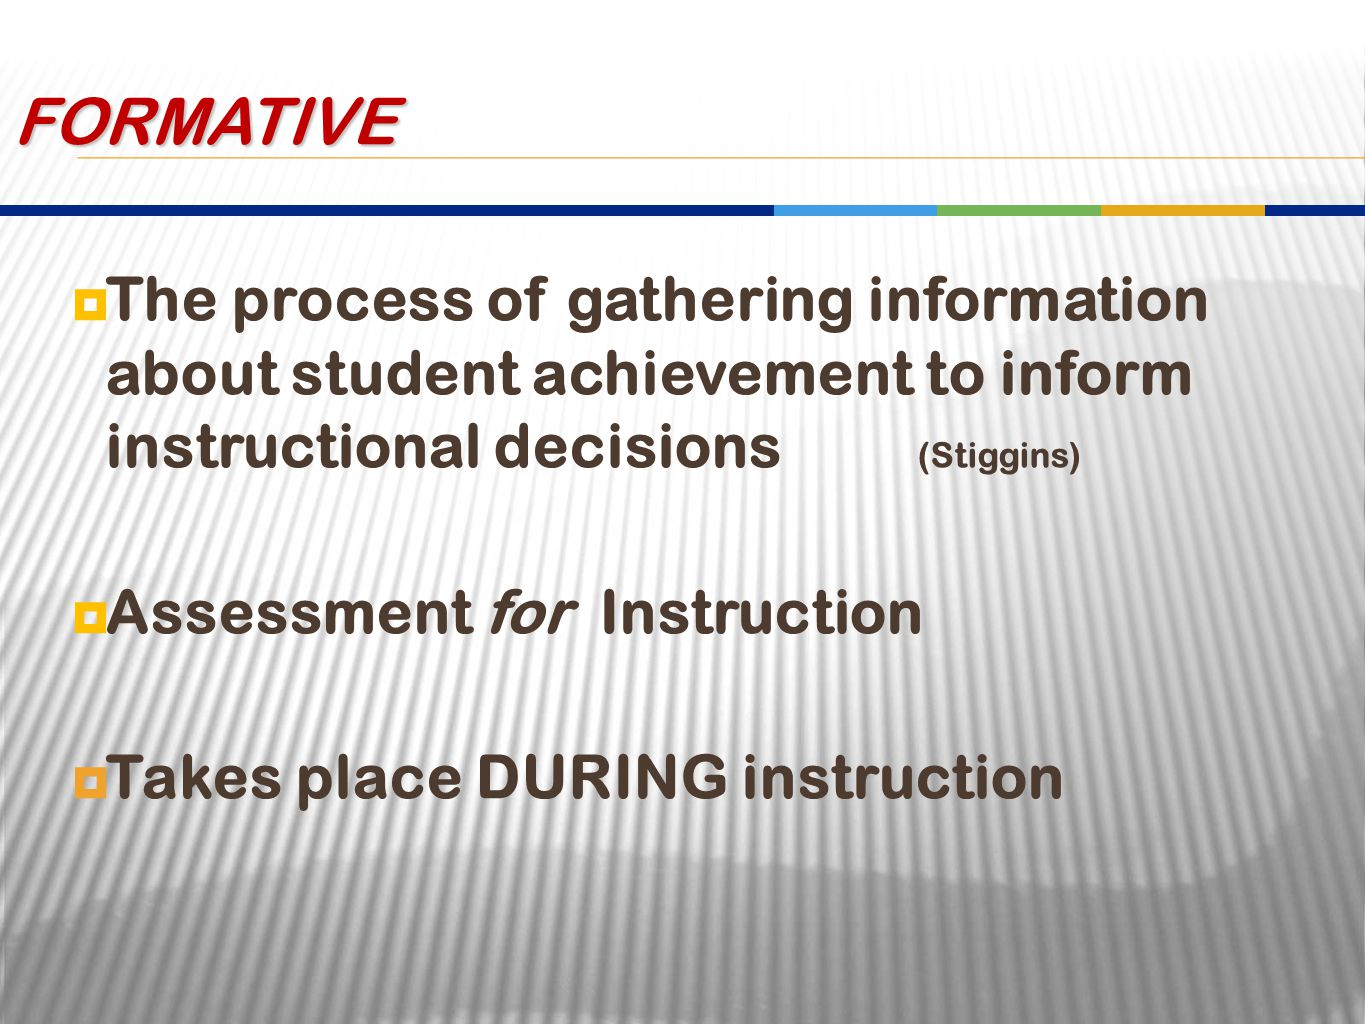  The process of gathering information about student achievement to inform instructional decisions (Stiggins)  Assessment for Instruction  Takes place DURING instruction FORMATIVE